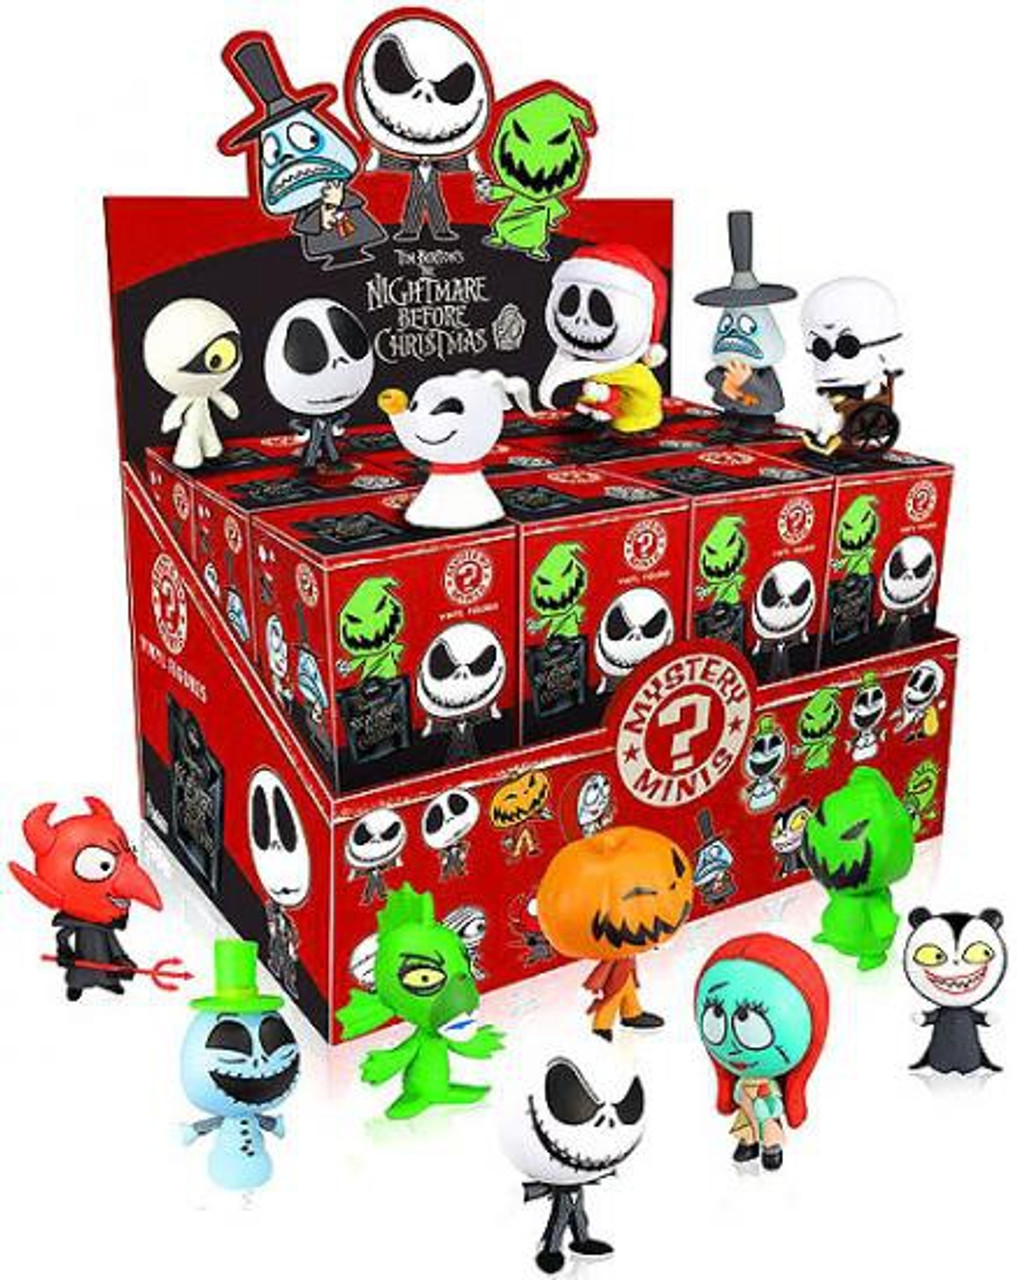 Funko The Nightmare Before Christmas Mystery Minis Nightmare Before Christmas Series 1 Mystery Box [24 Packs]